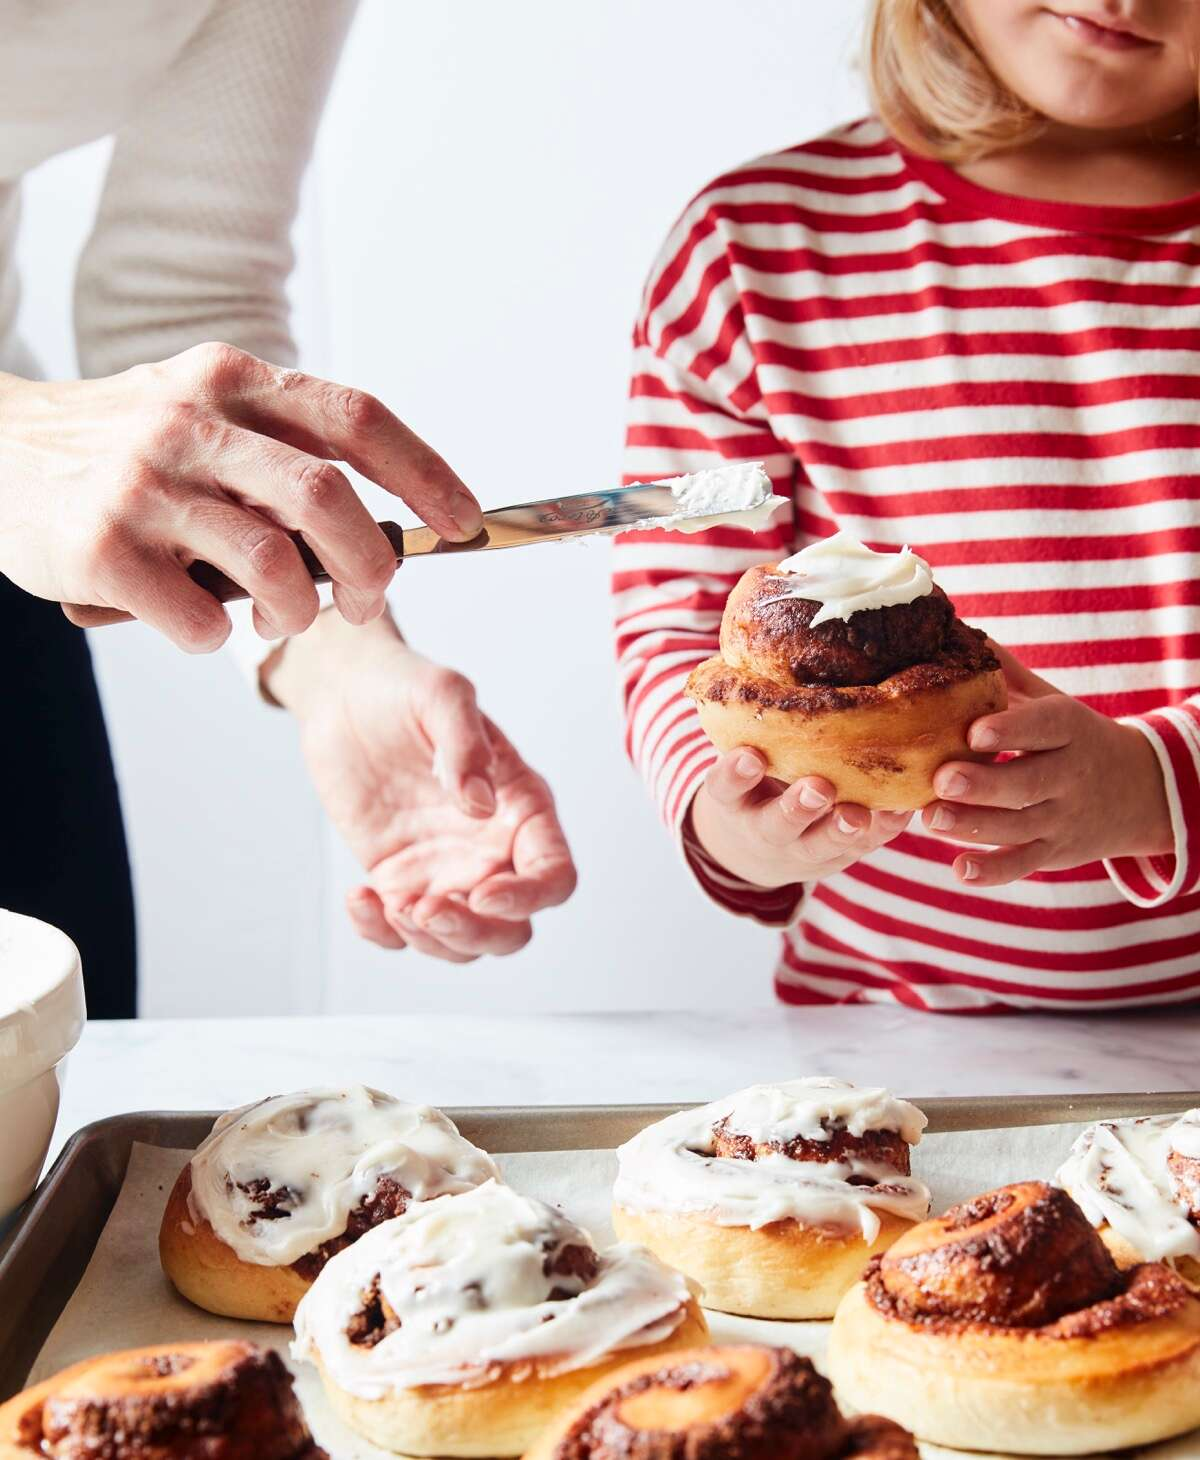 Little girl in a red-striped shirt holding a cinnamon roll while Mom frosts it with white icing.